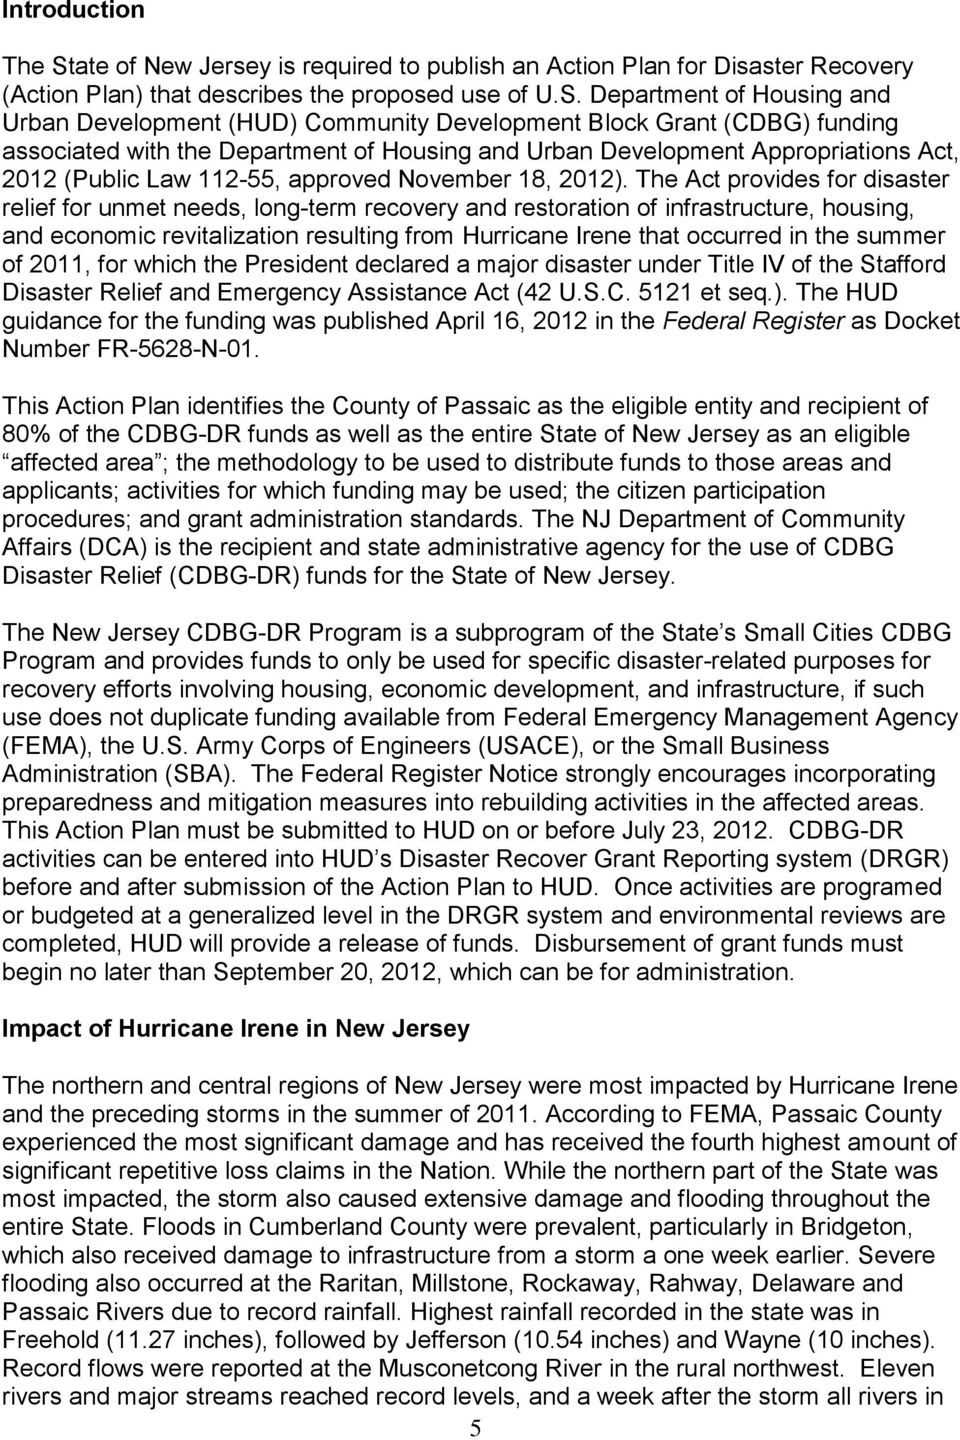 Department of Housing and Urban Development (HUD) Community Development Block Grant (CDBG) funding associated with the Department of Housing and Urban Development Appropriations Act, 2012 (Public Law